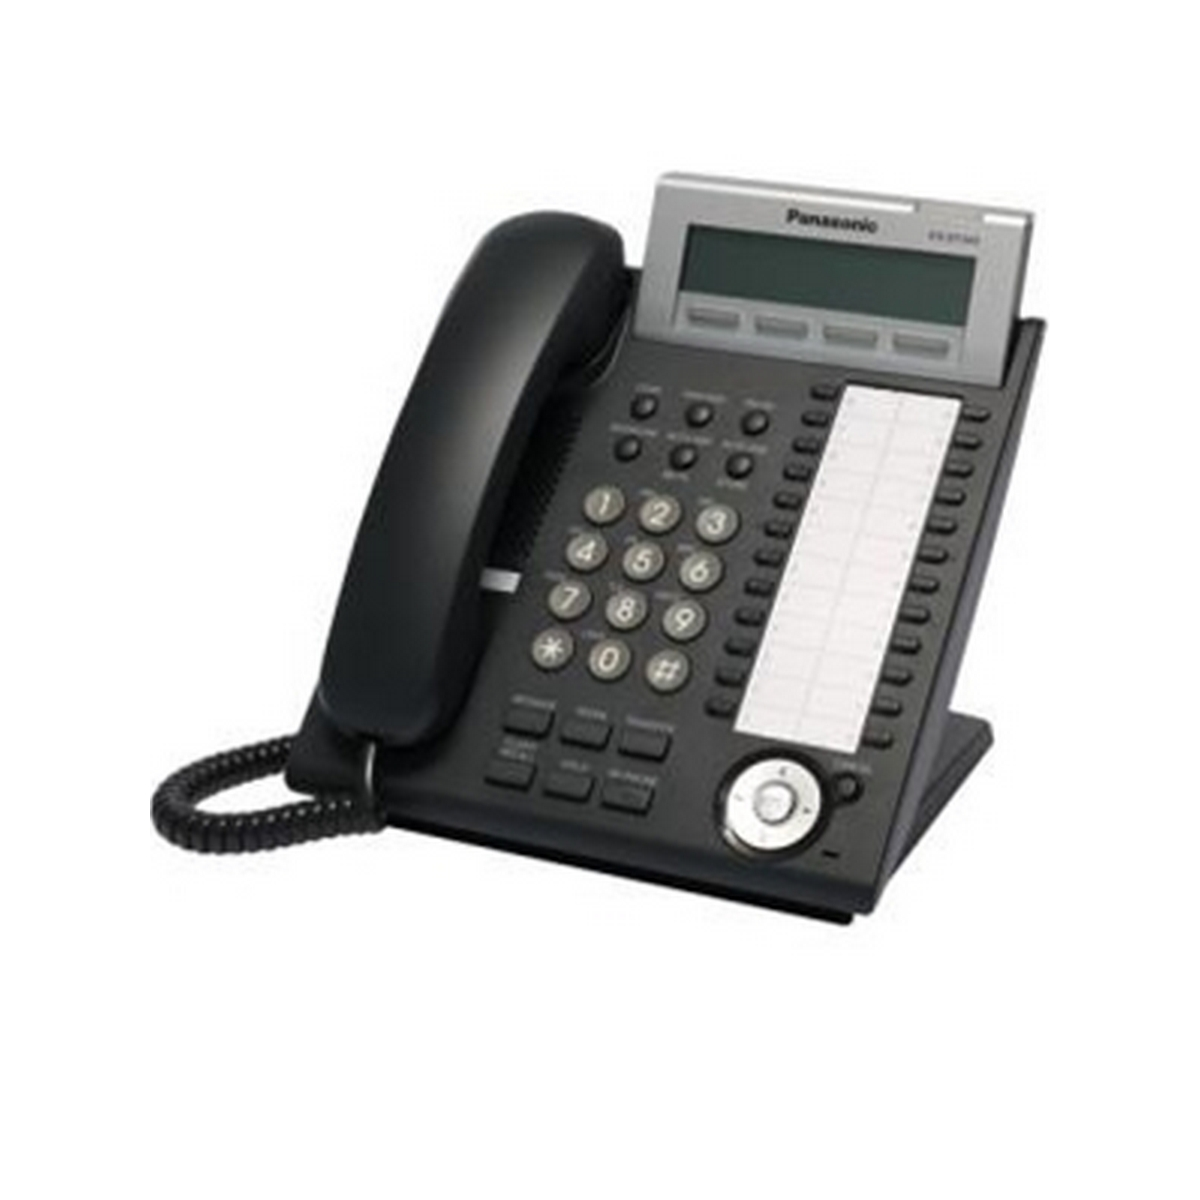 PAN-KXNT343B IP 3 Line LCD Phone